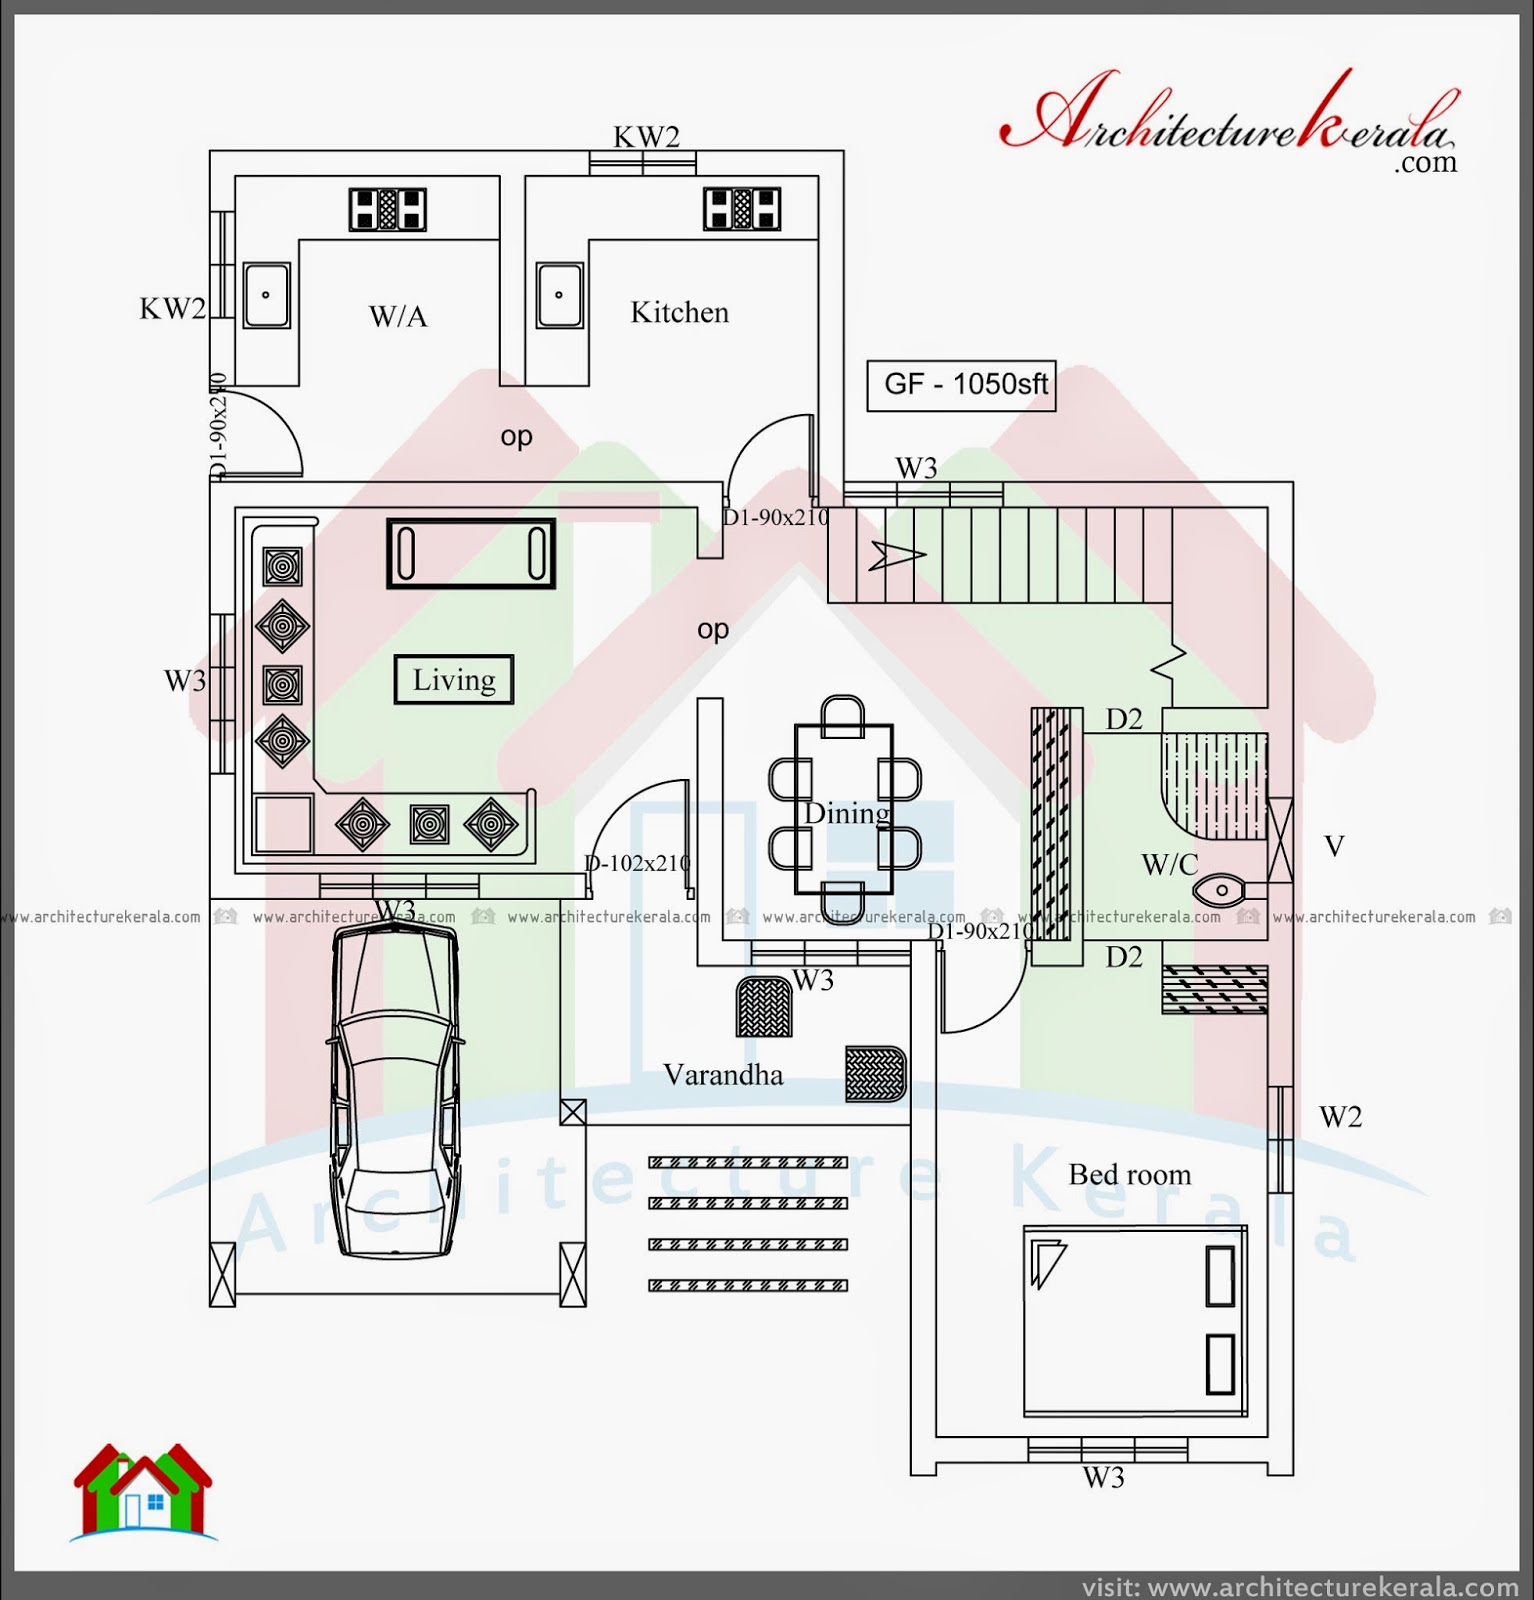 Three bedroom two storey house plan architecture kerala Two story house designs